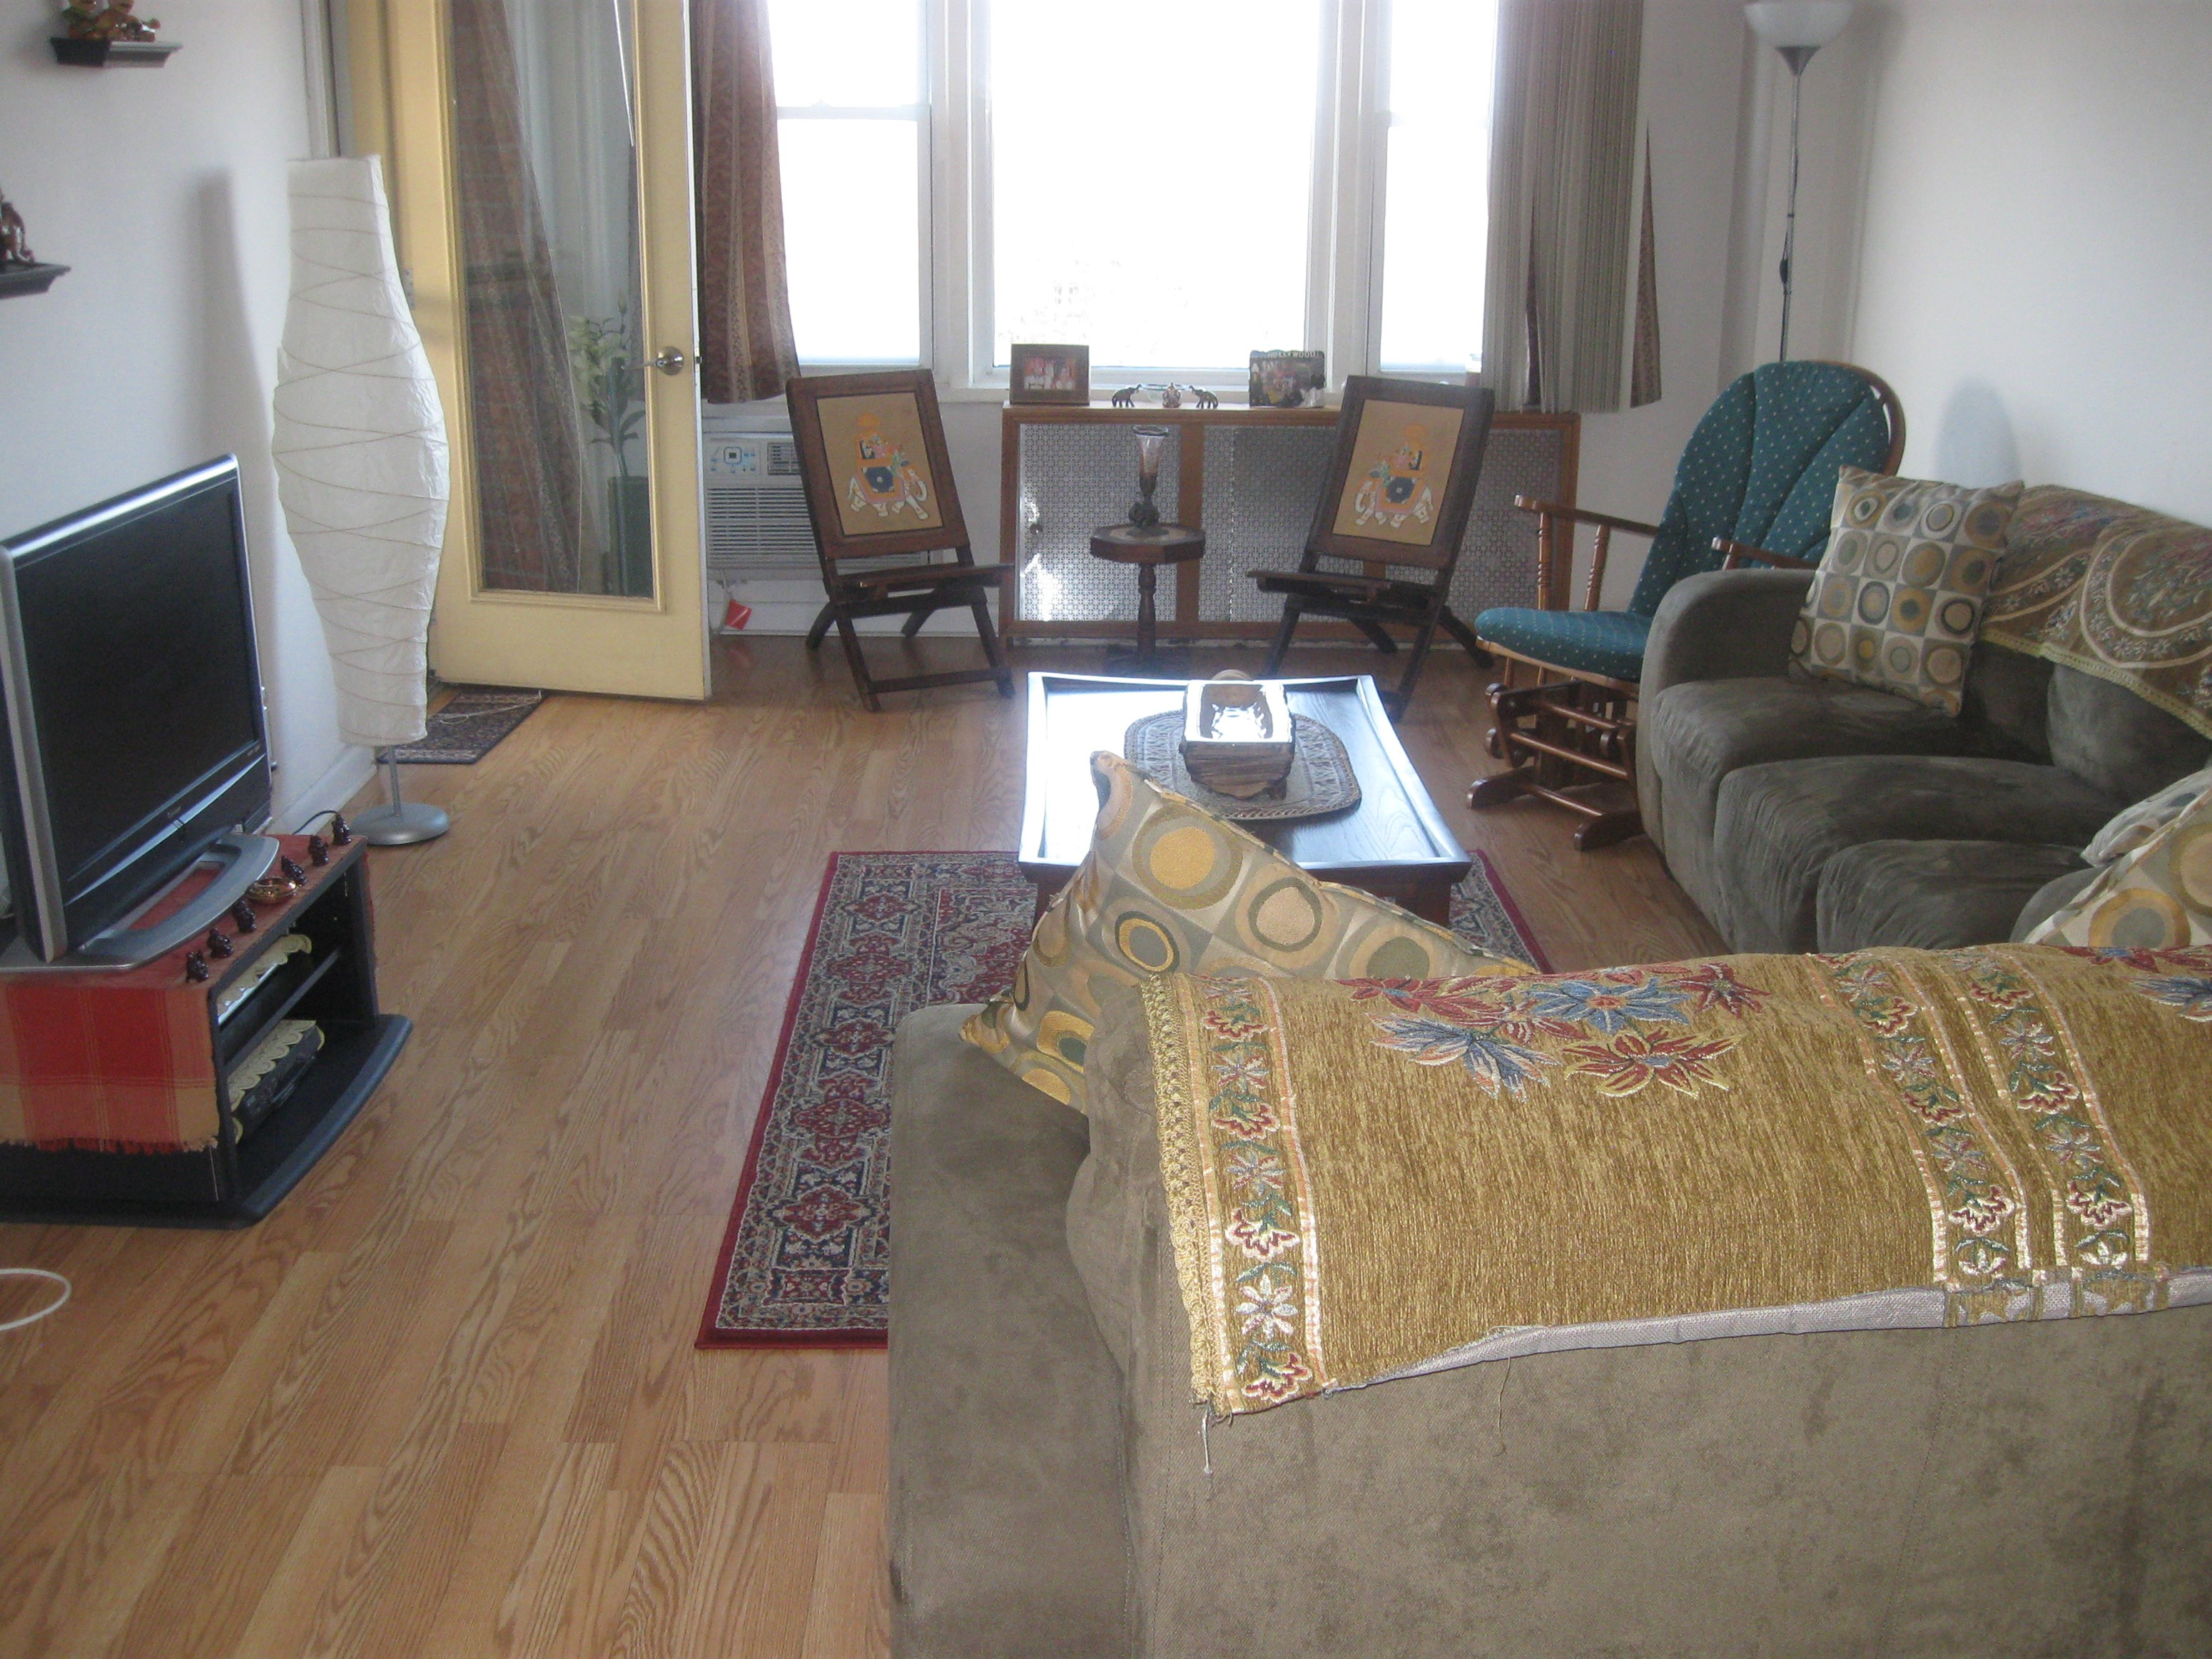 2 Bedroom 1 Bathroom Apartment Strawberry Hill Stamford Ct 1 Year Lease 2 Bhk